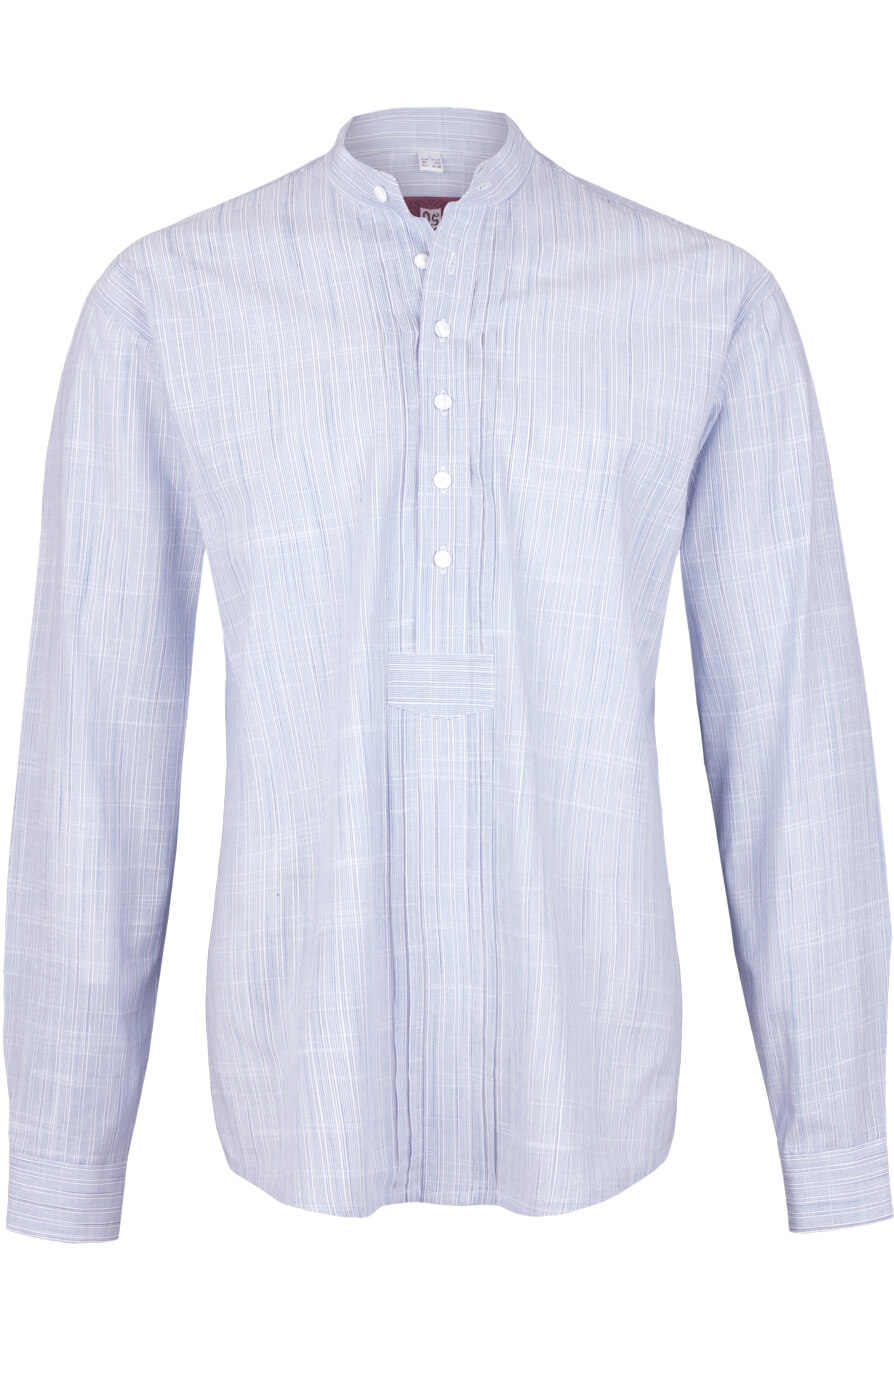 weitere Bilder von German traditional shirt 920001-3440-2 blue